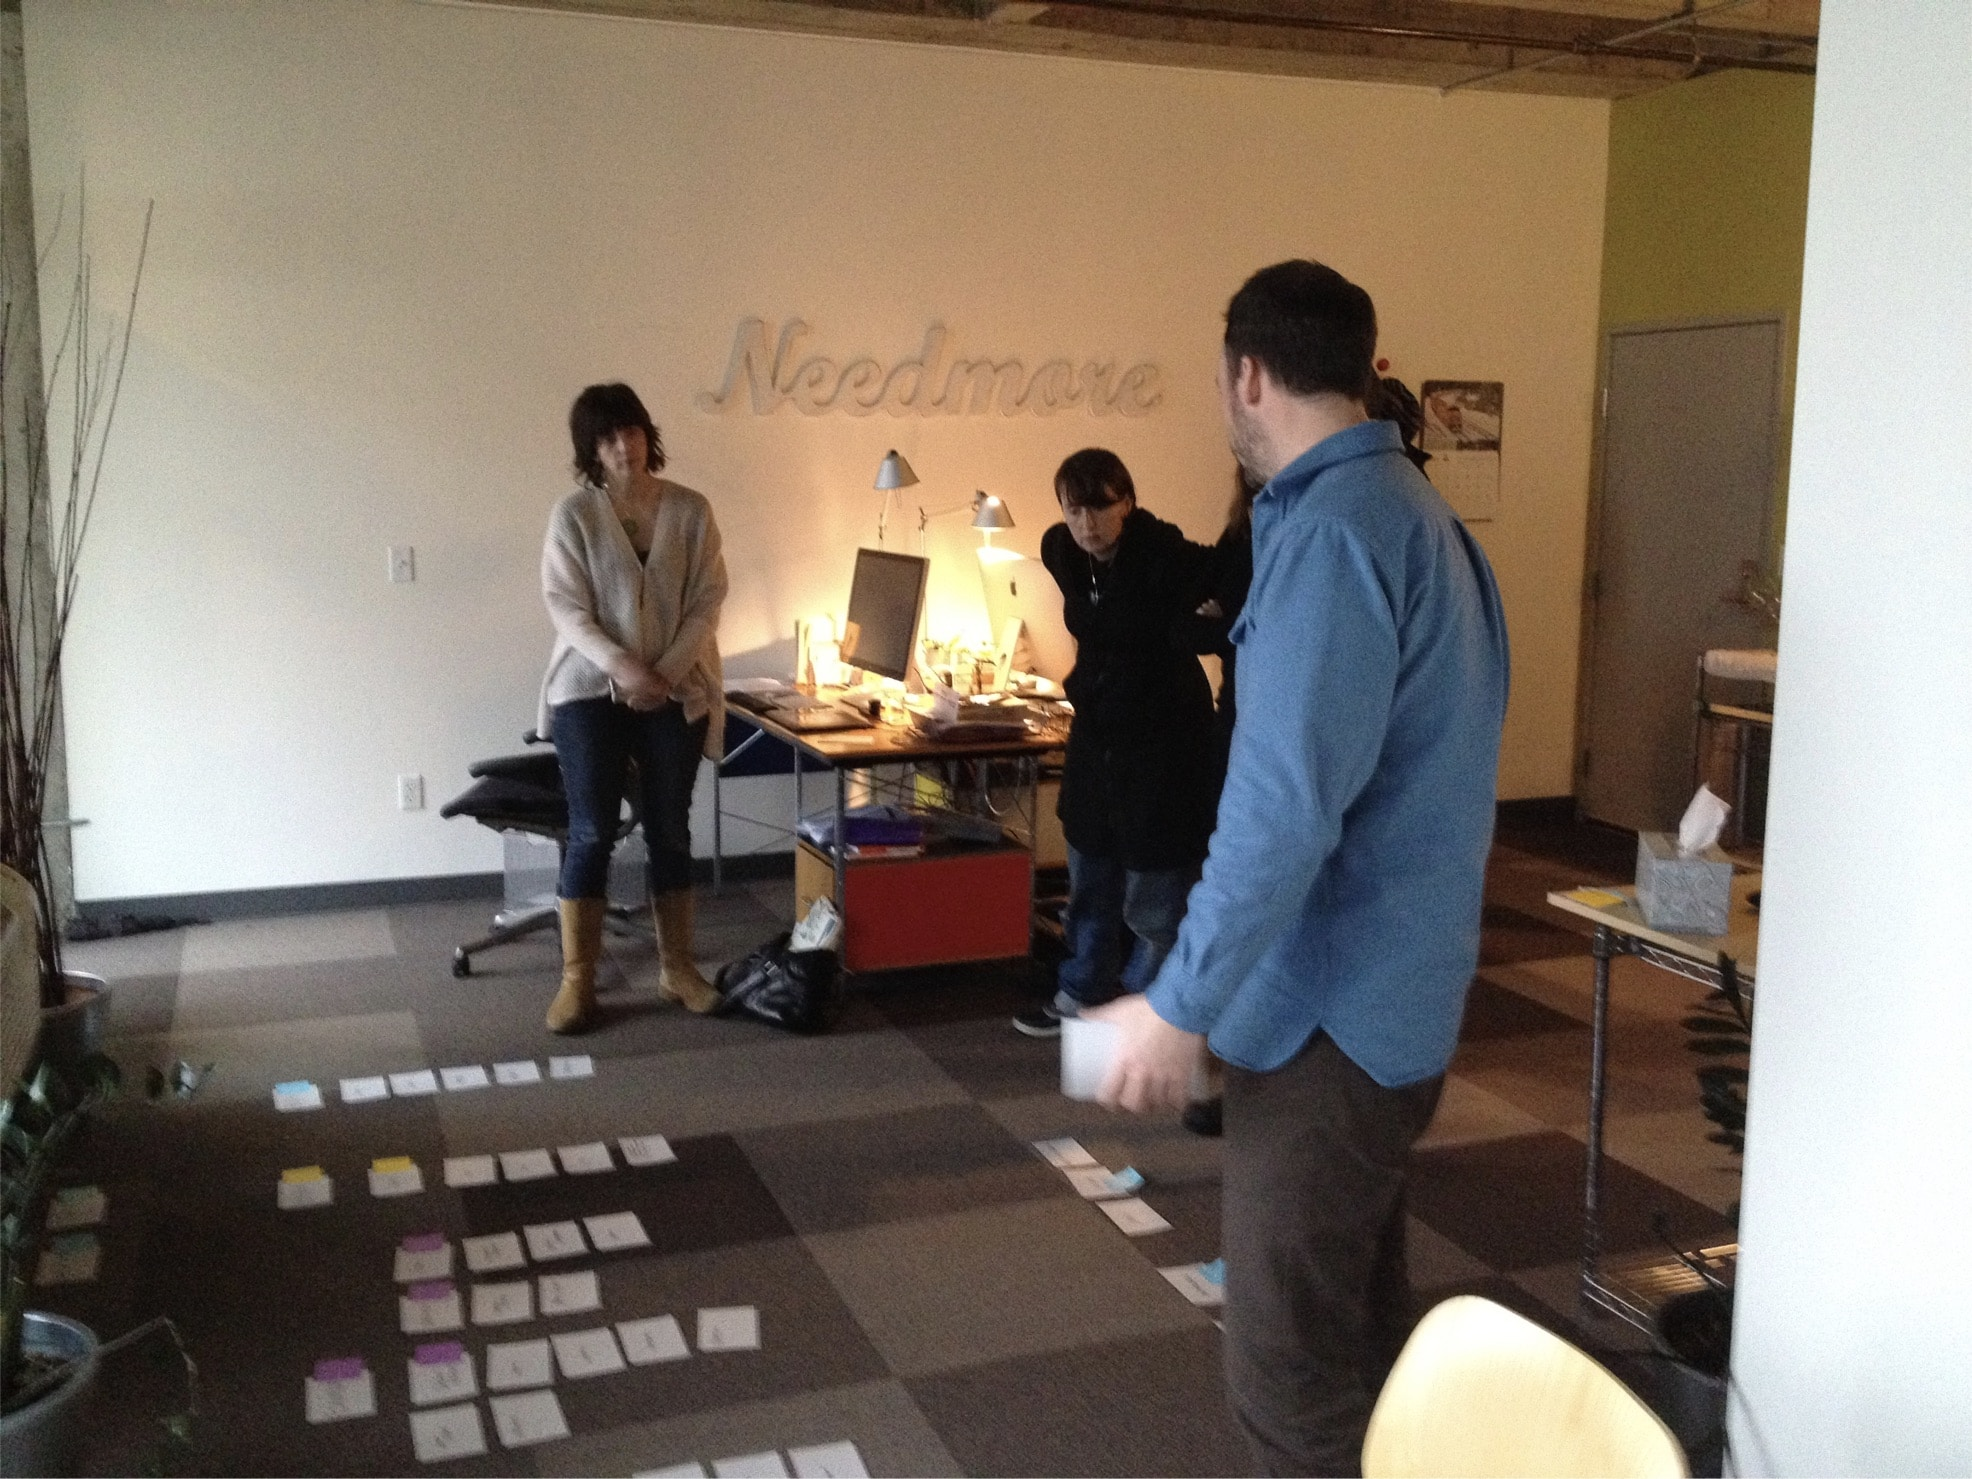 Needmore team ideating